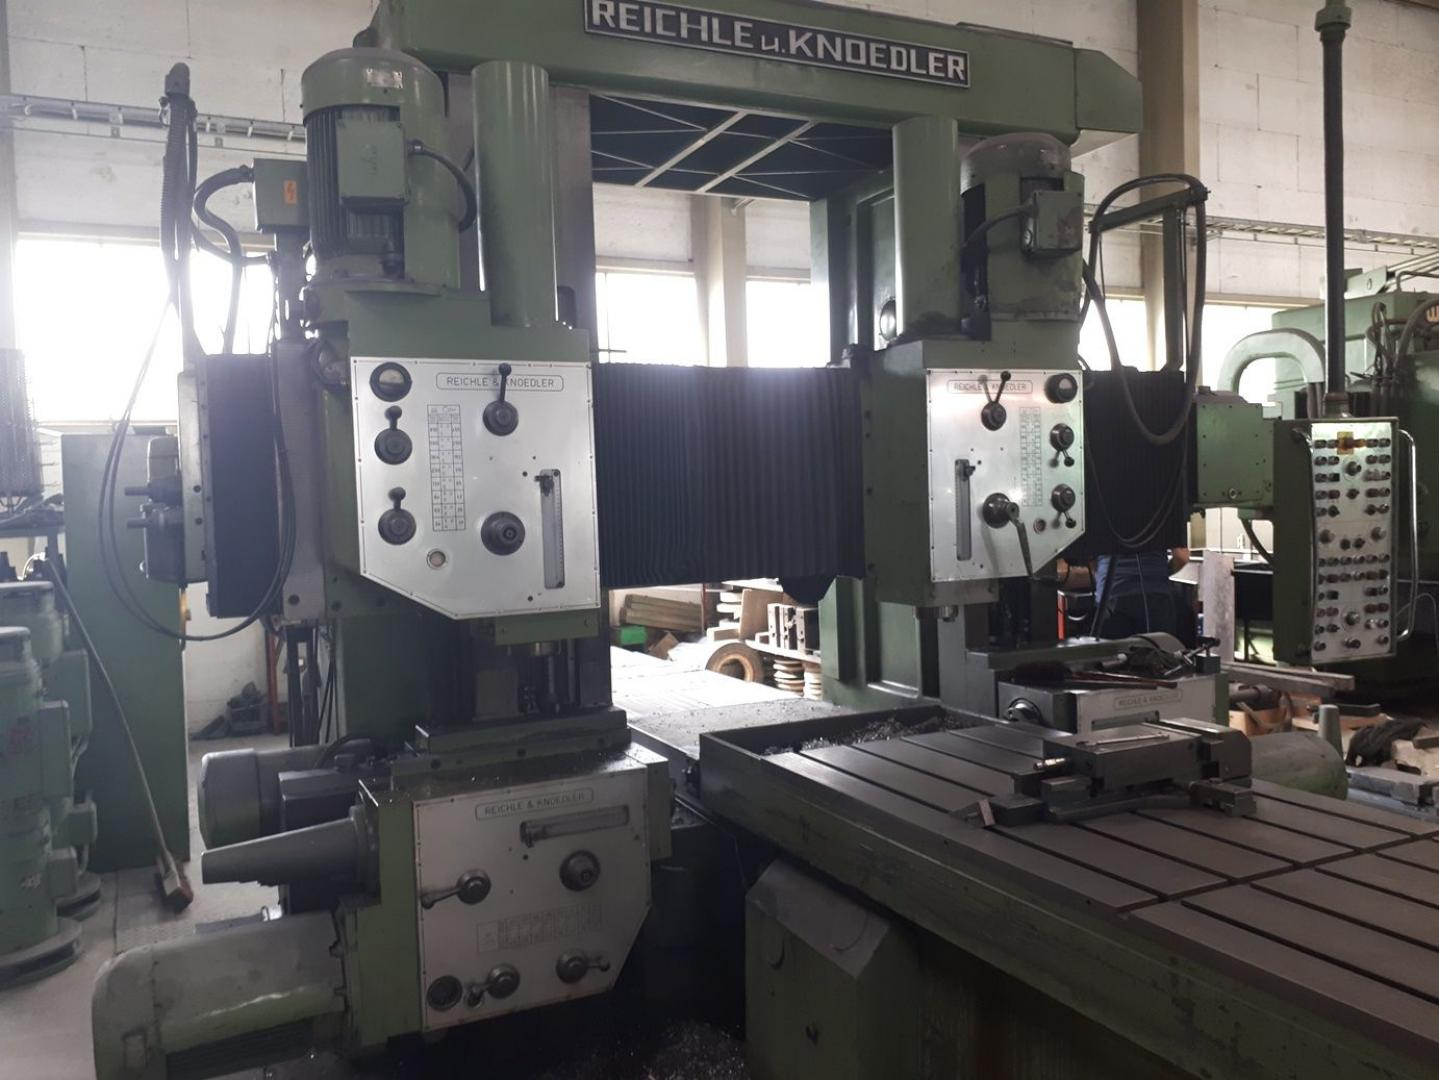 used Milling machines Planer-Type Milling M/C - Double Column REICHLE & KNOEDLER